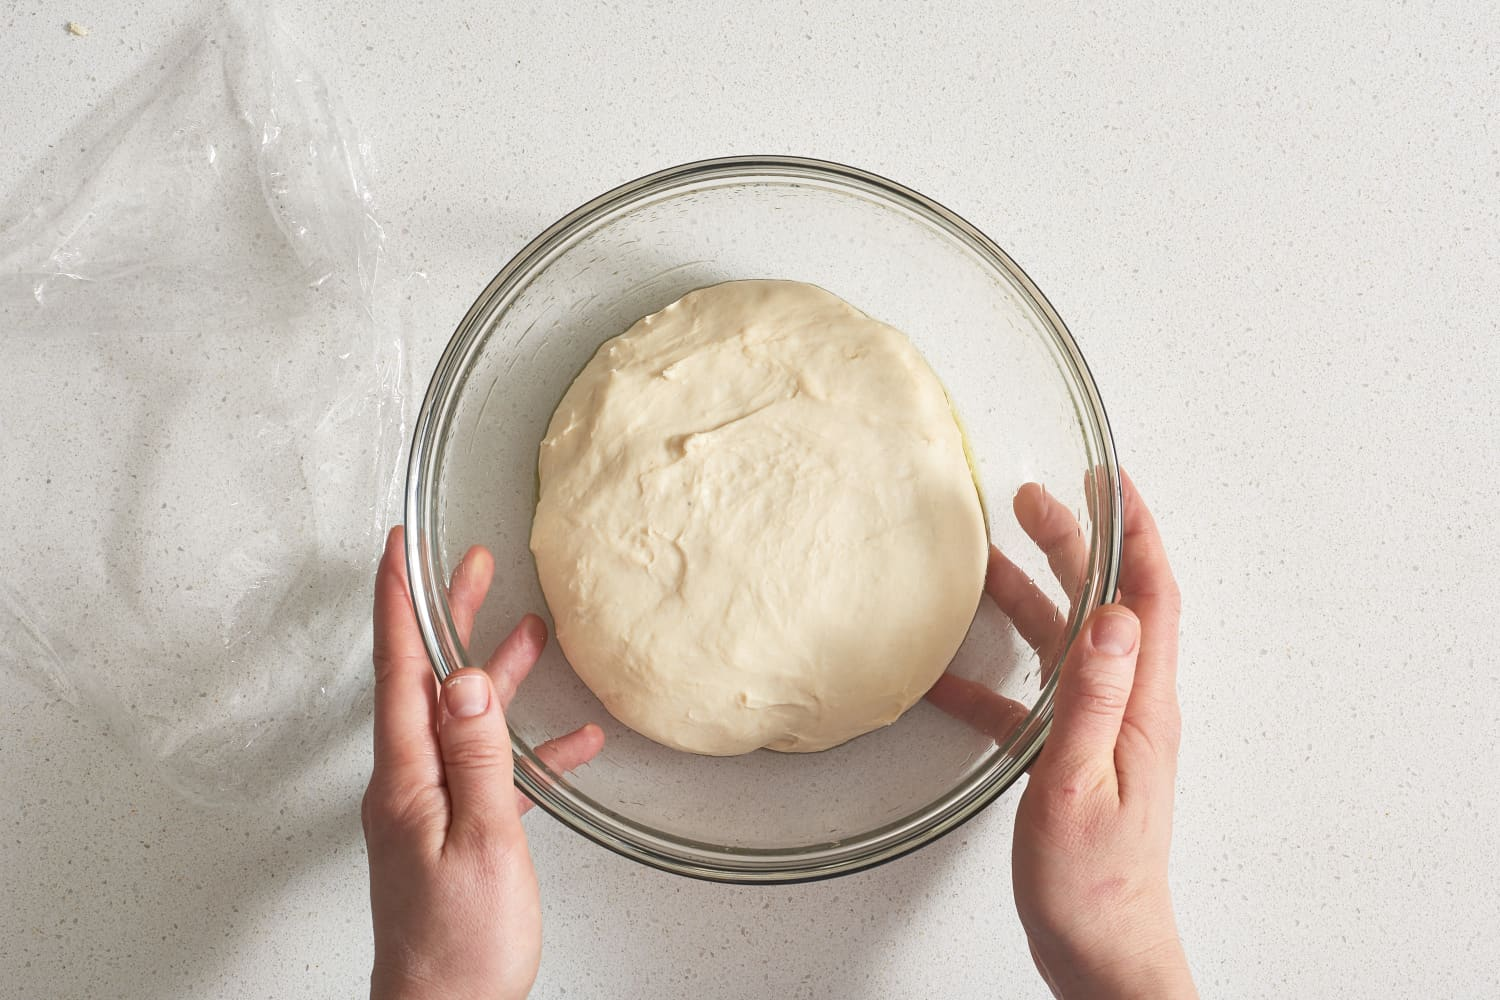 Two-Ingredient Dough for Bagel or Pizza Recipes | Kitchn